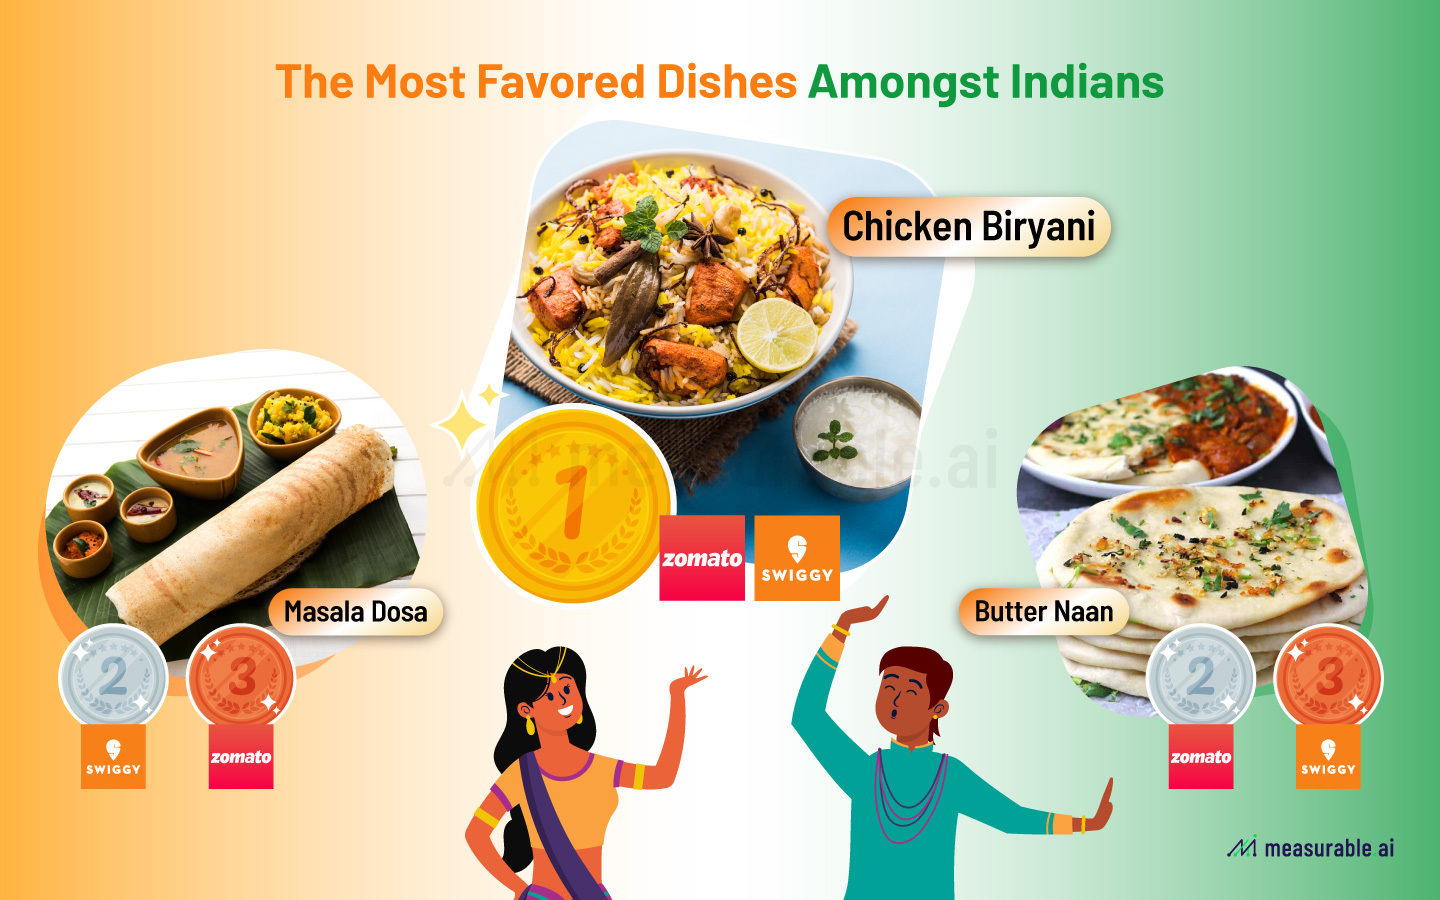 The most favoured dishes for Indians when it comes to online food delivery